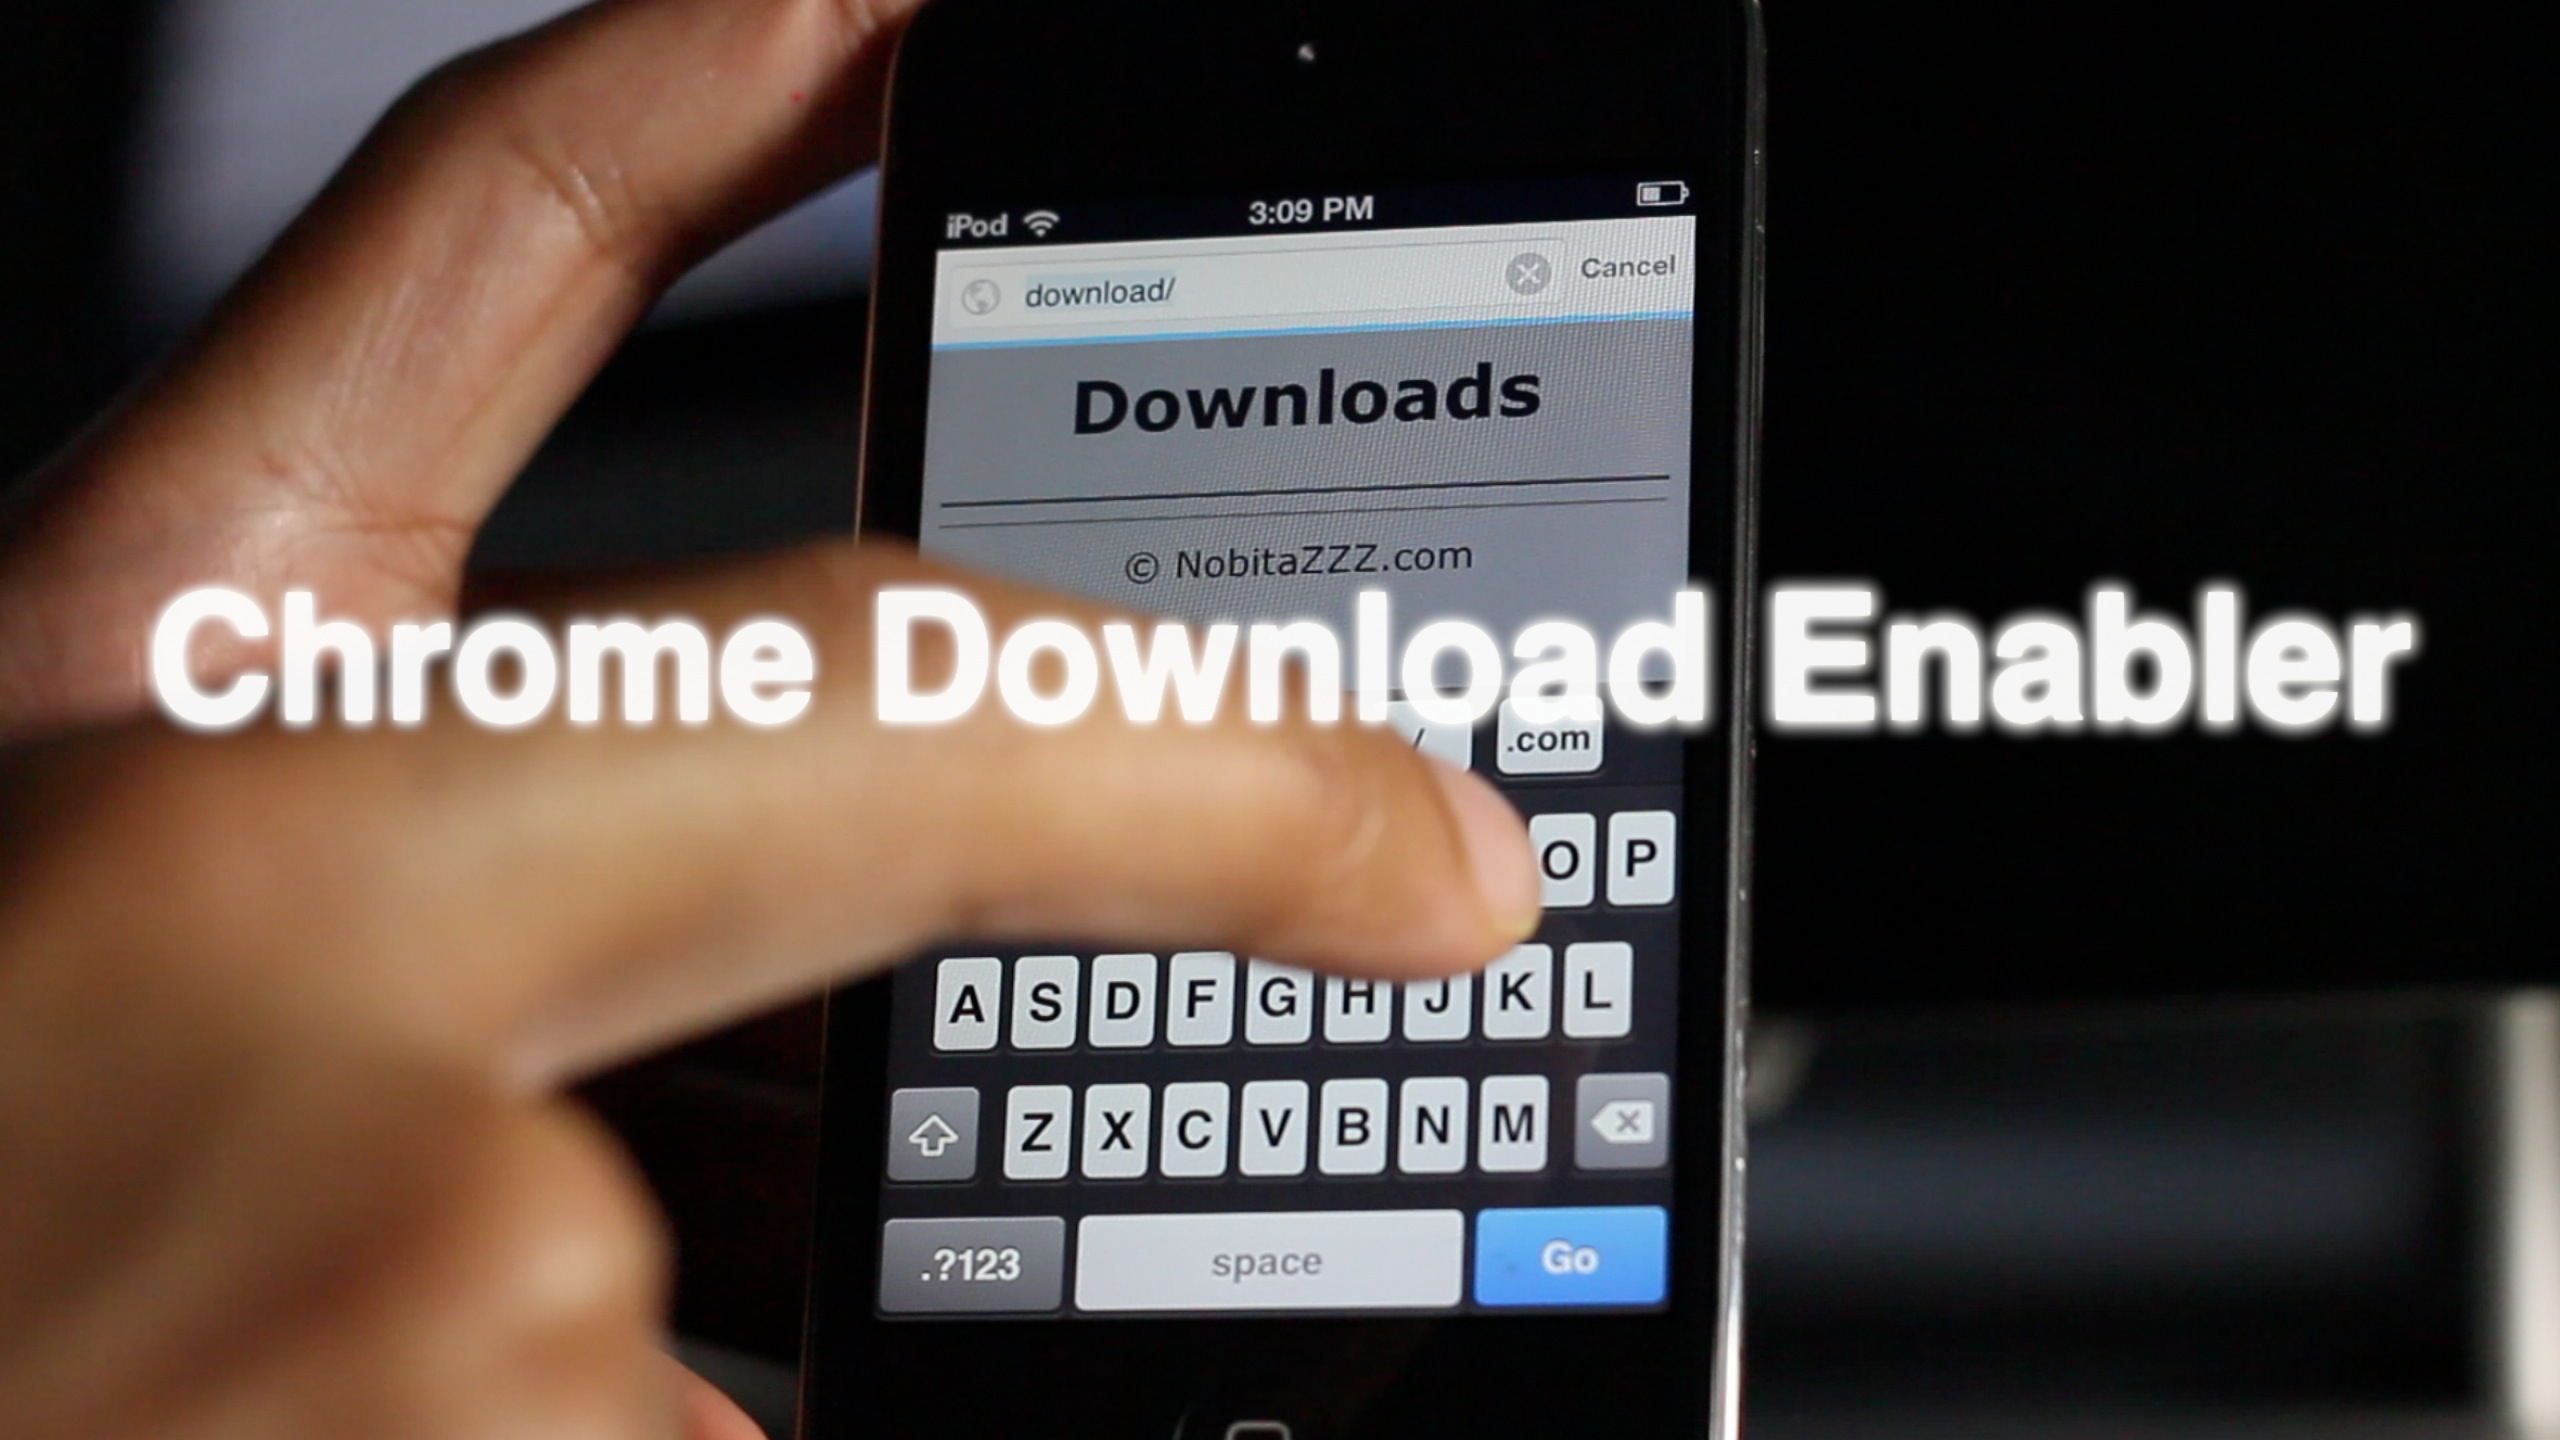 How to download files with Google Chrome on iOS